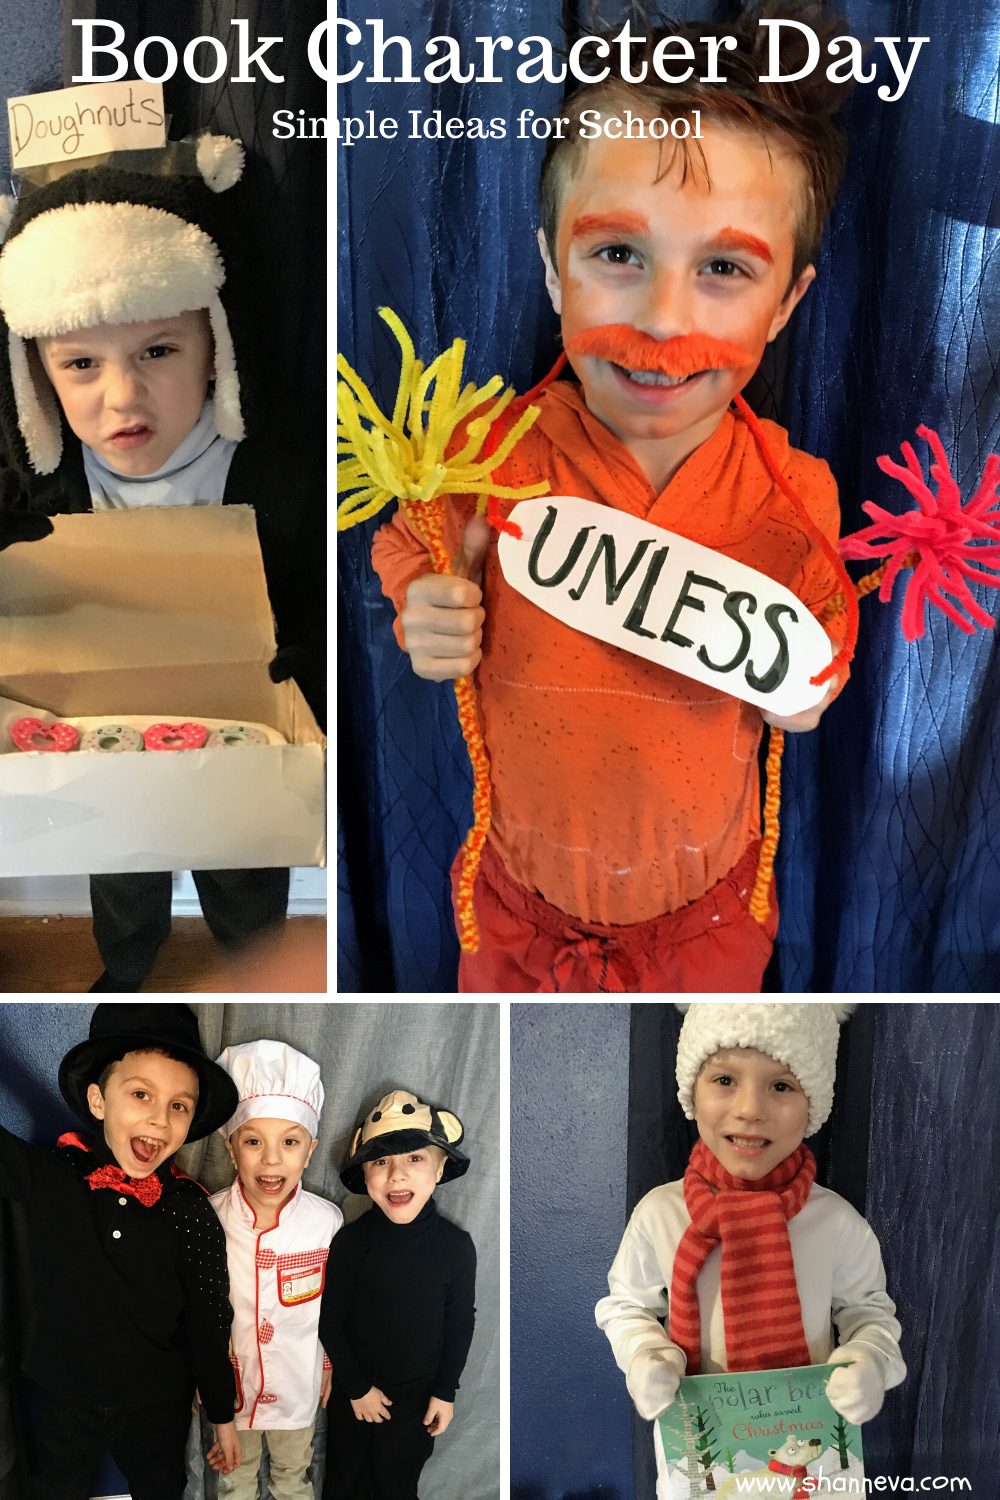 Simple costume ideas for Book Character Day. Easy dress-up solutions for any school spirit week or costume day.